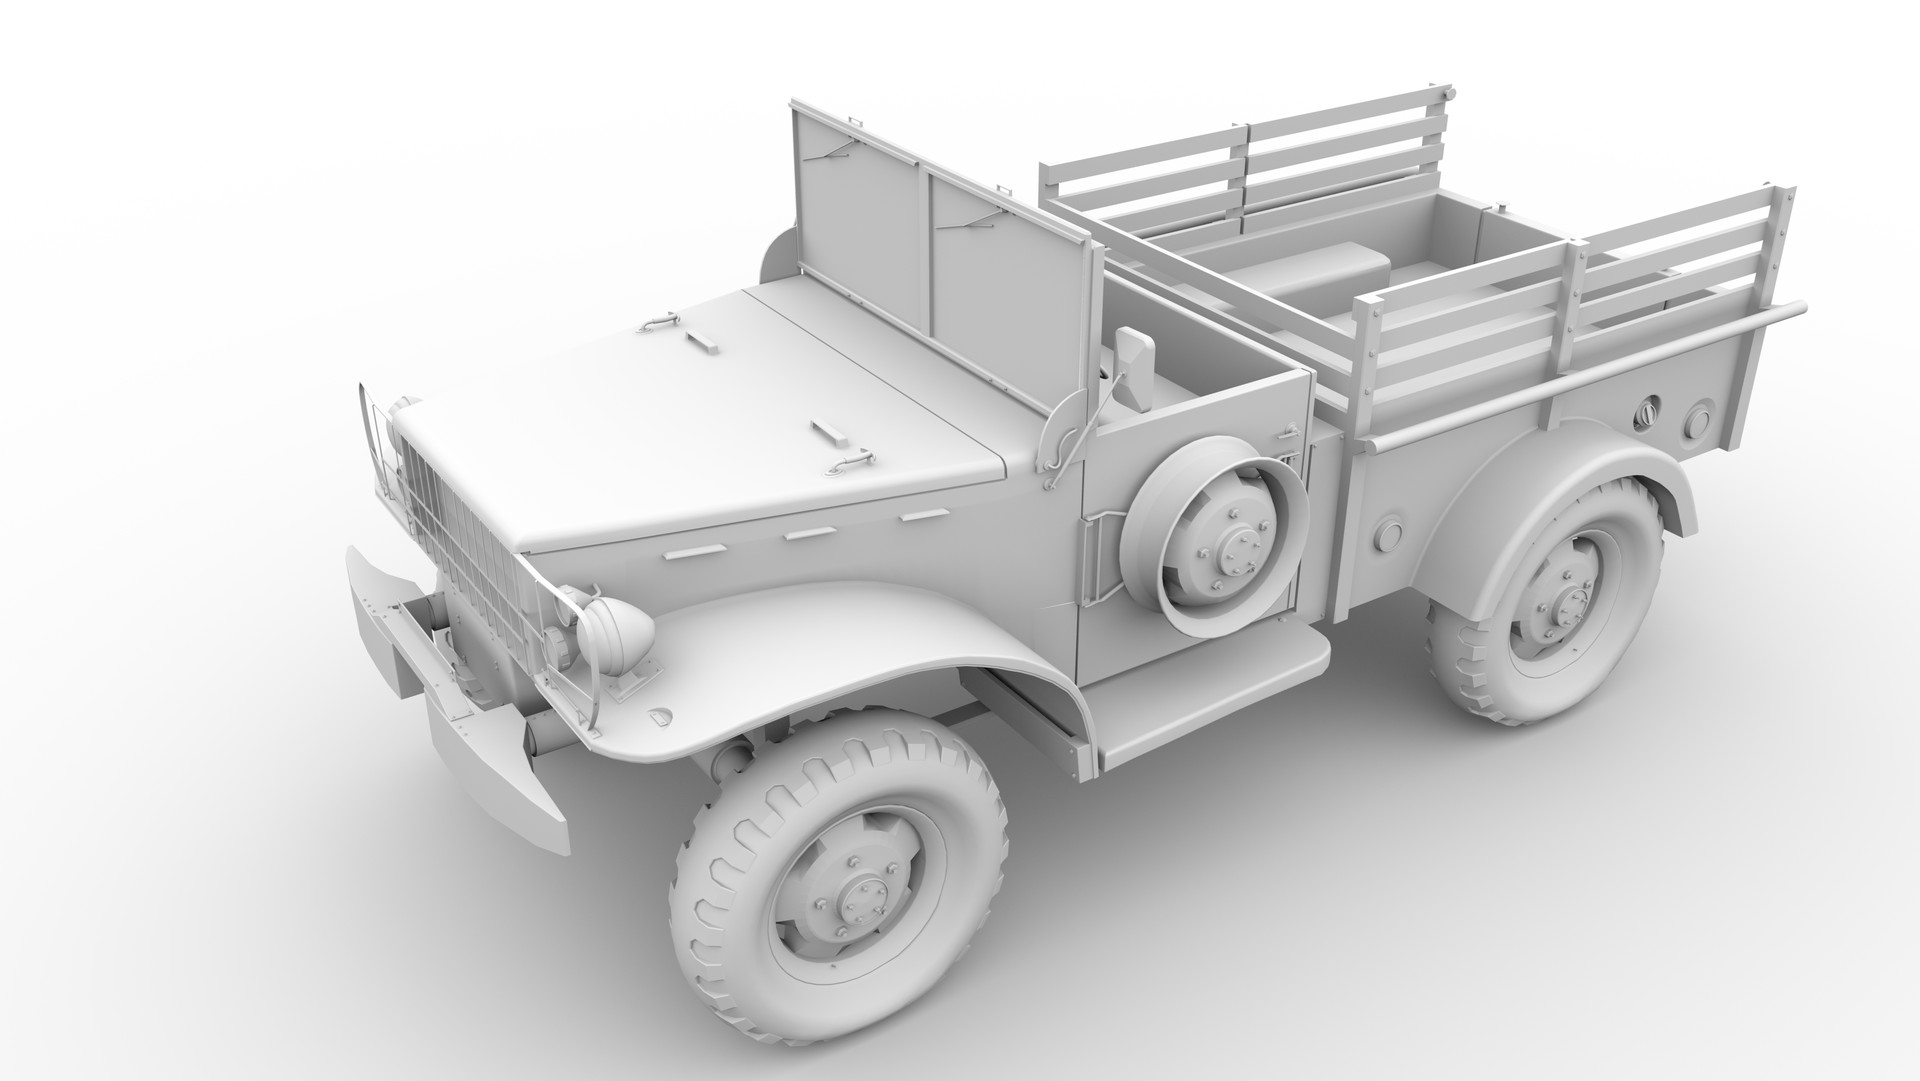 I plan to utilize this angle for the final renders once textures and the rest of the scene are complete. I avoided going into heavy details on the back, far side, and underside of the vehicle to save on rendering time. I kept just visible details.